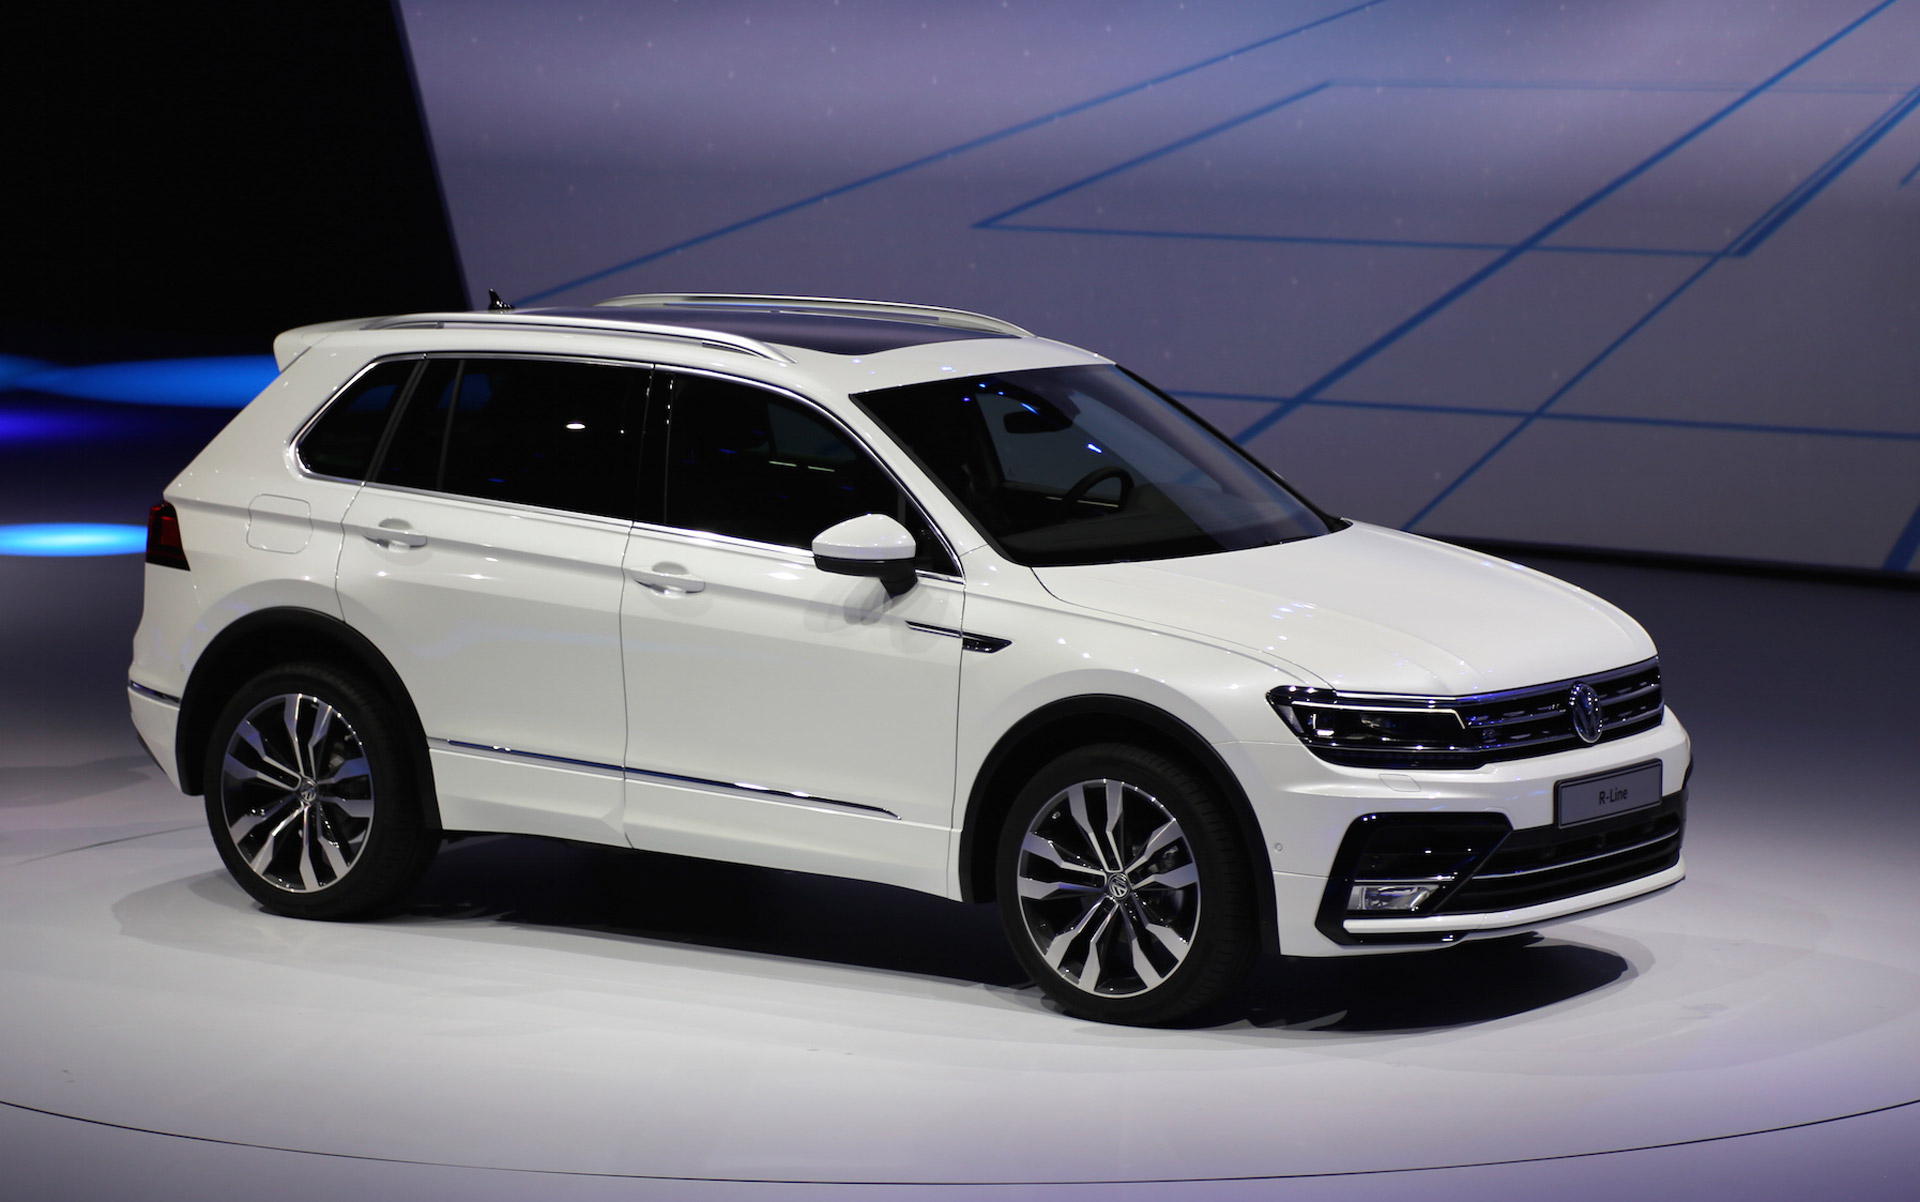 2018 vw tiguan suv aims for u s with third row higher mpg. Black Bedroom Furniture Sets. Home Design Ideas